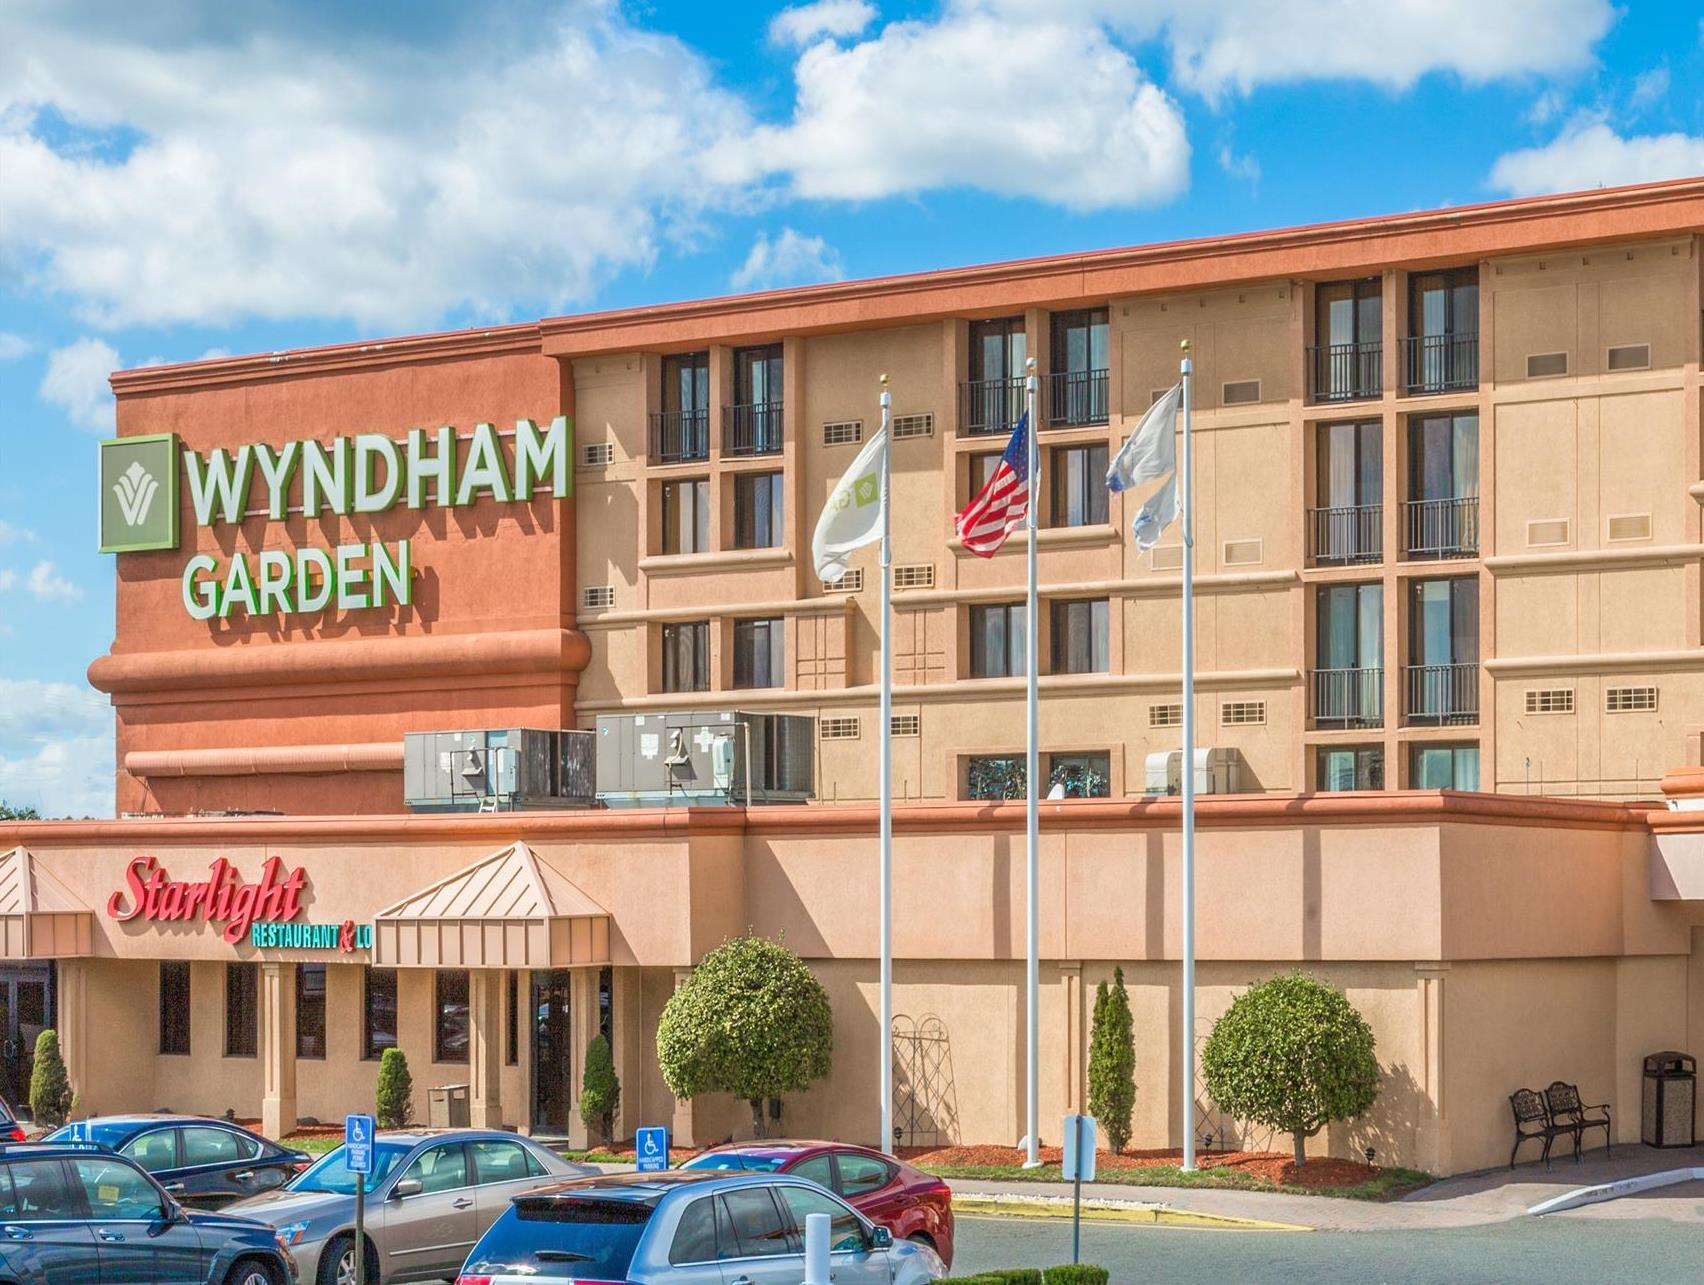 Captivating More About Wyndham Garden Hotel  Newark Airport Amazing Design